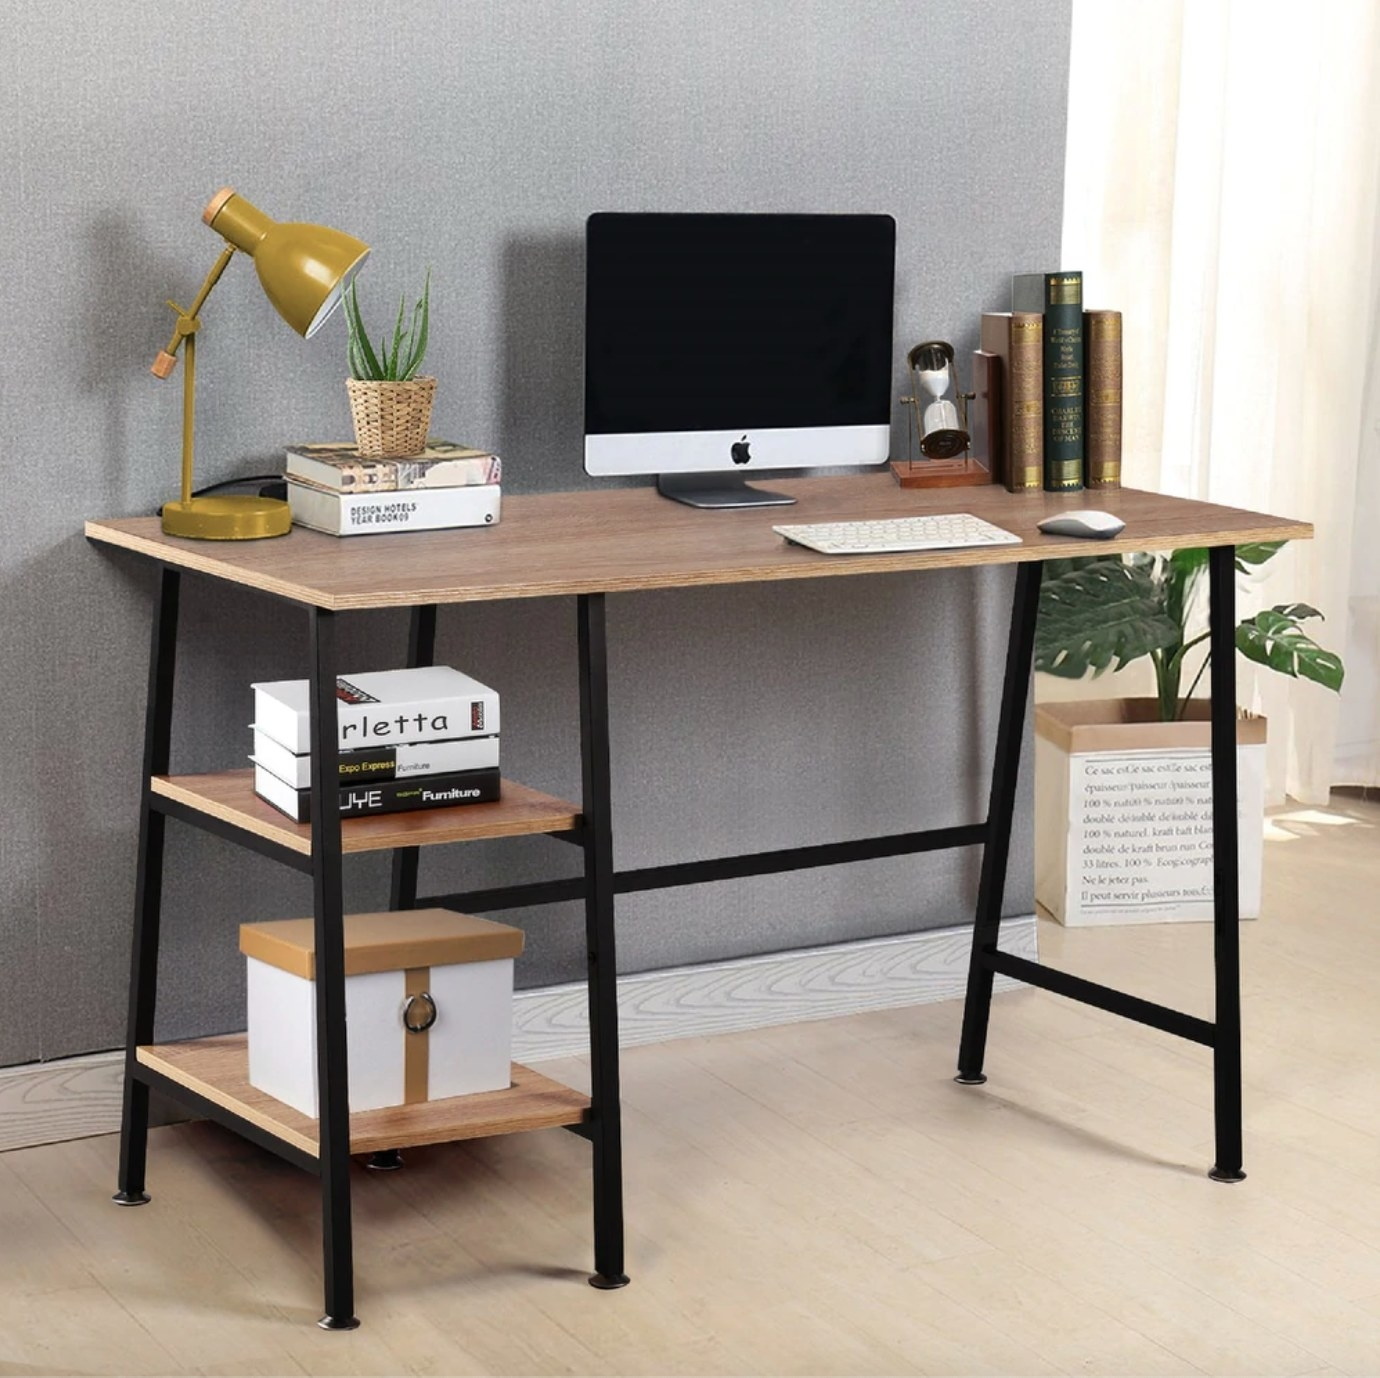 The storage desk with removeable 2 tier shelves